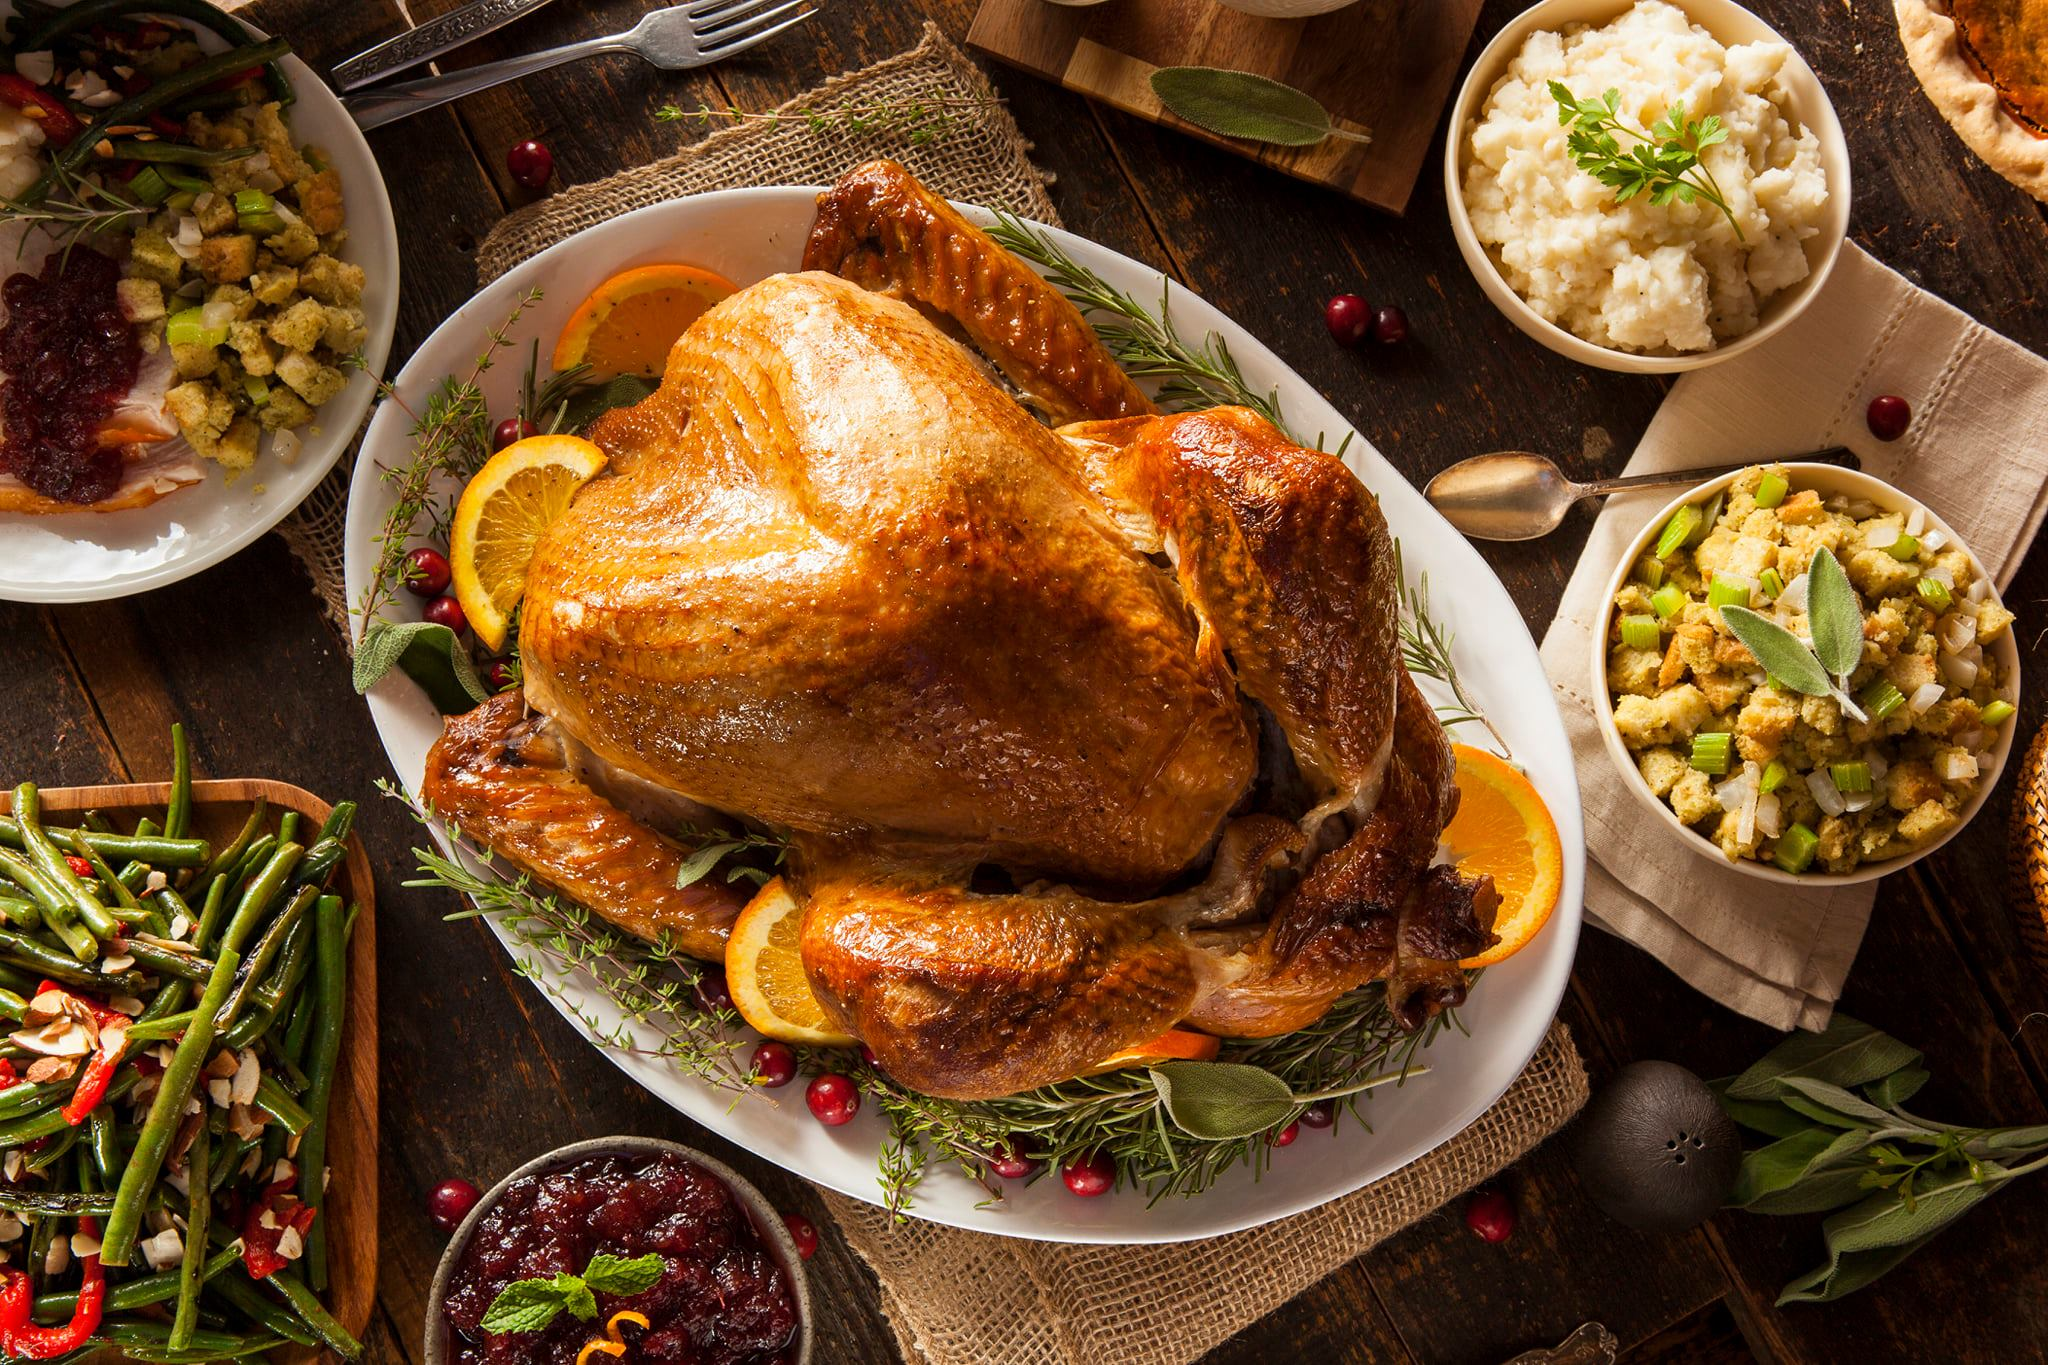 Thanksgiving Dinner on the Lawrenceville Square